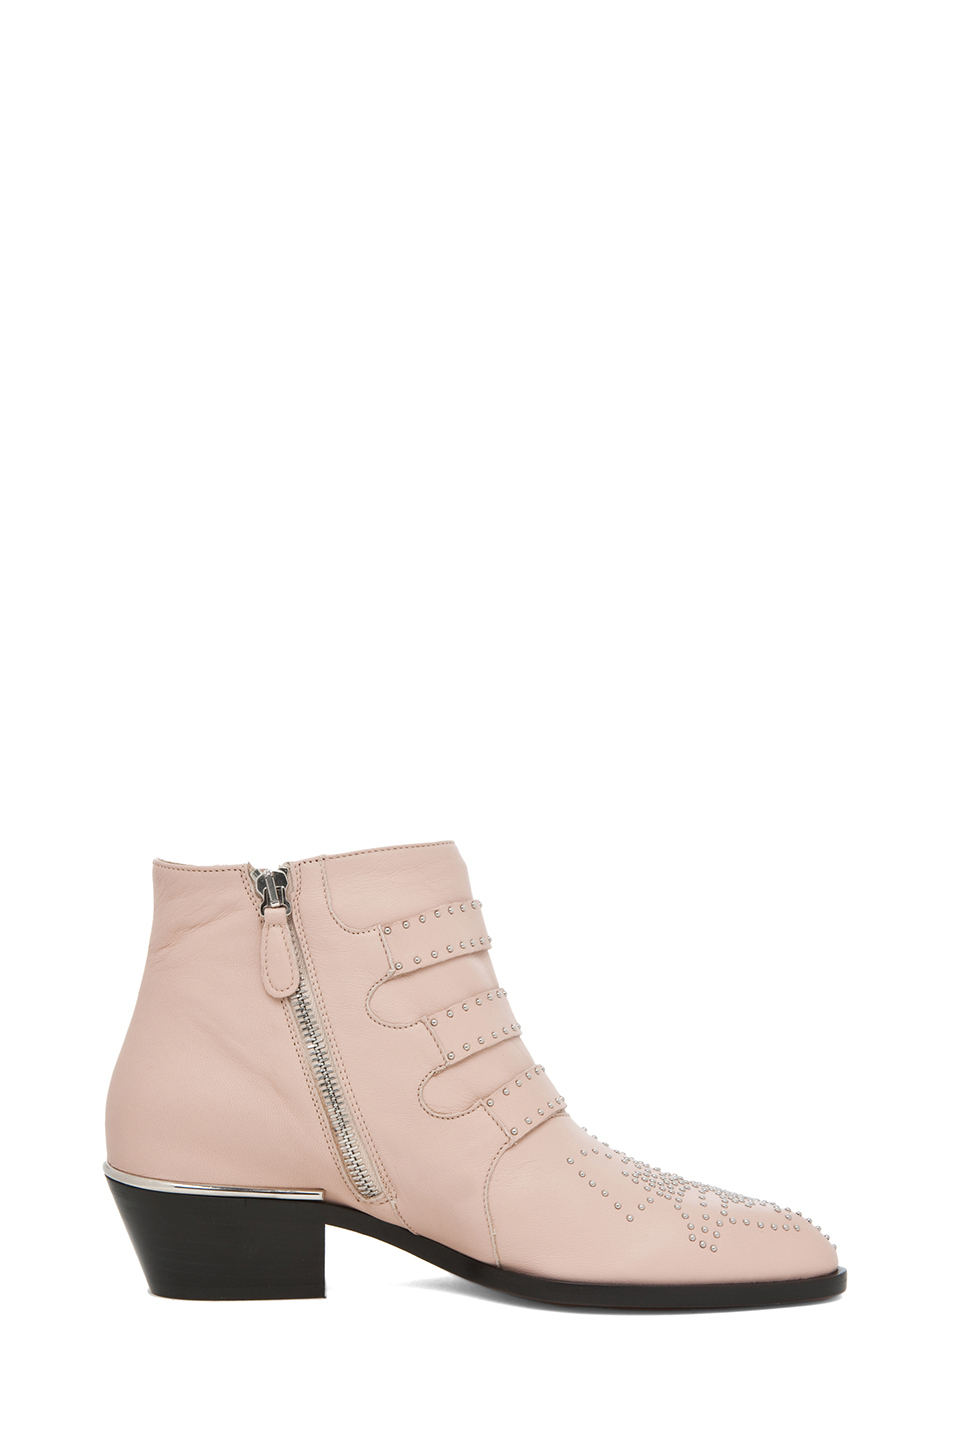 Chloe|Susanna Leather Studded Bootie in Nude Pink